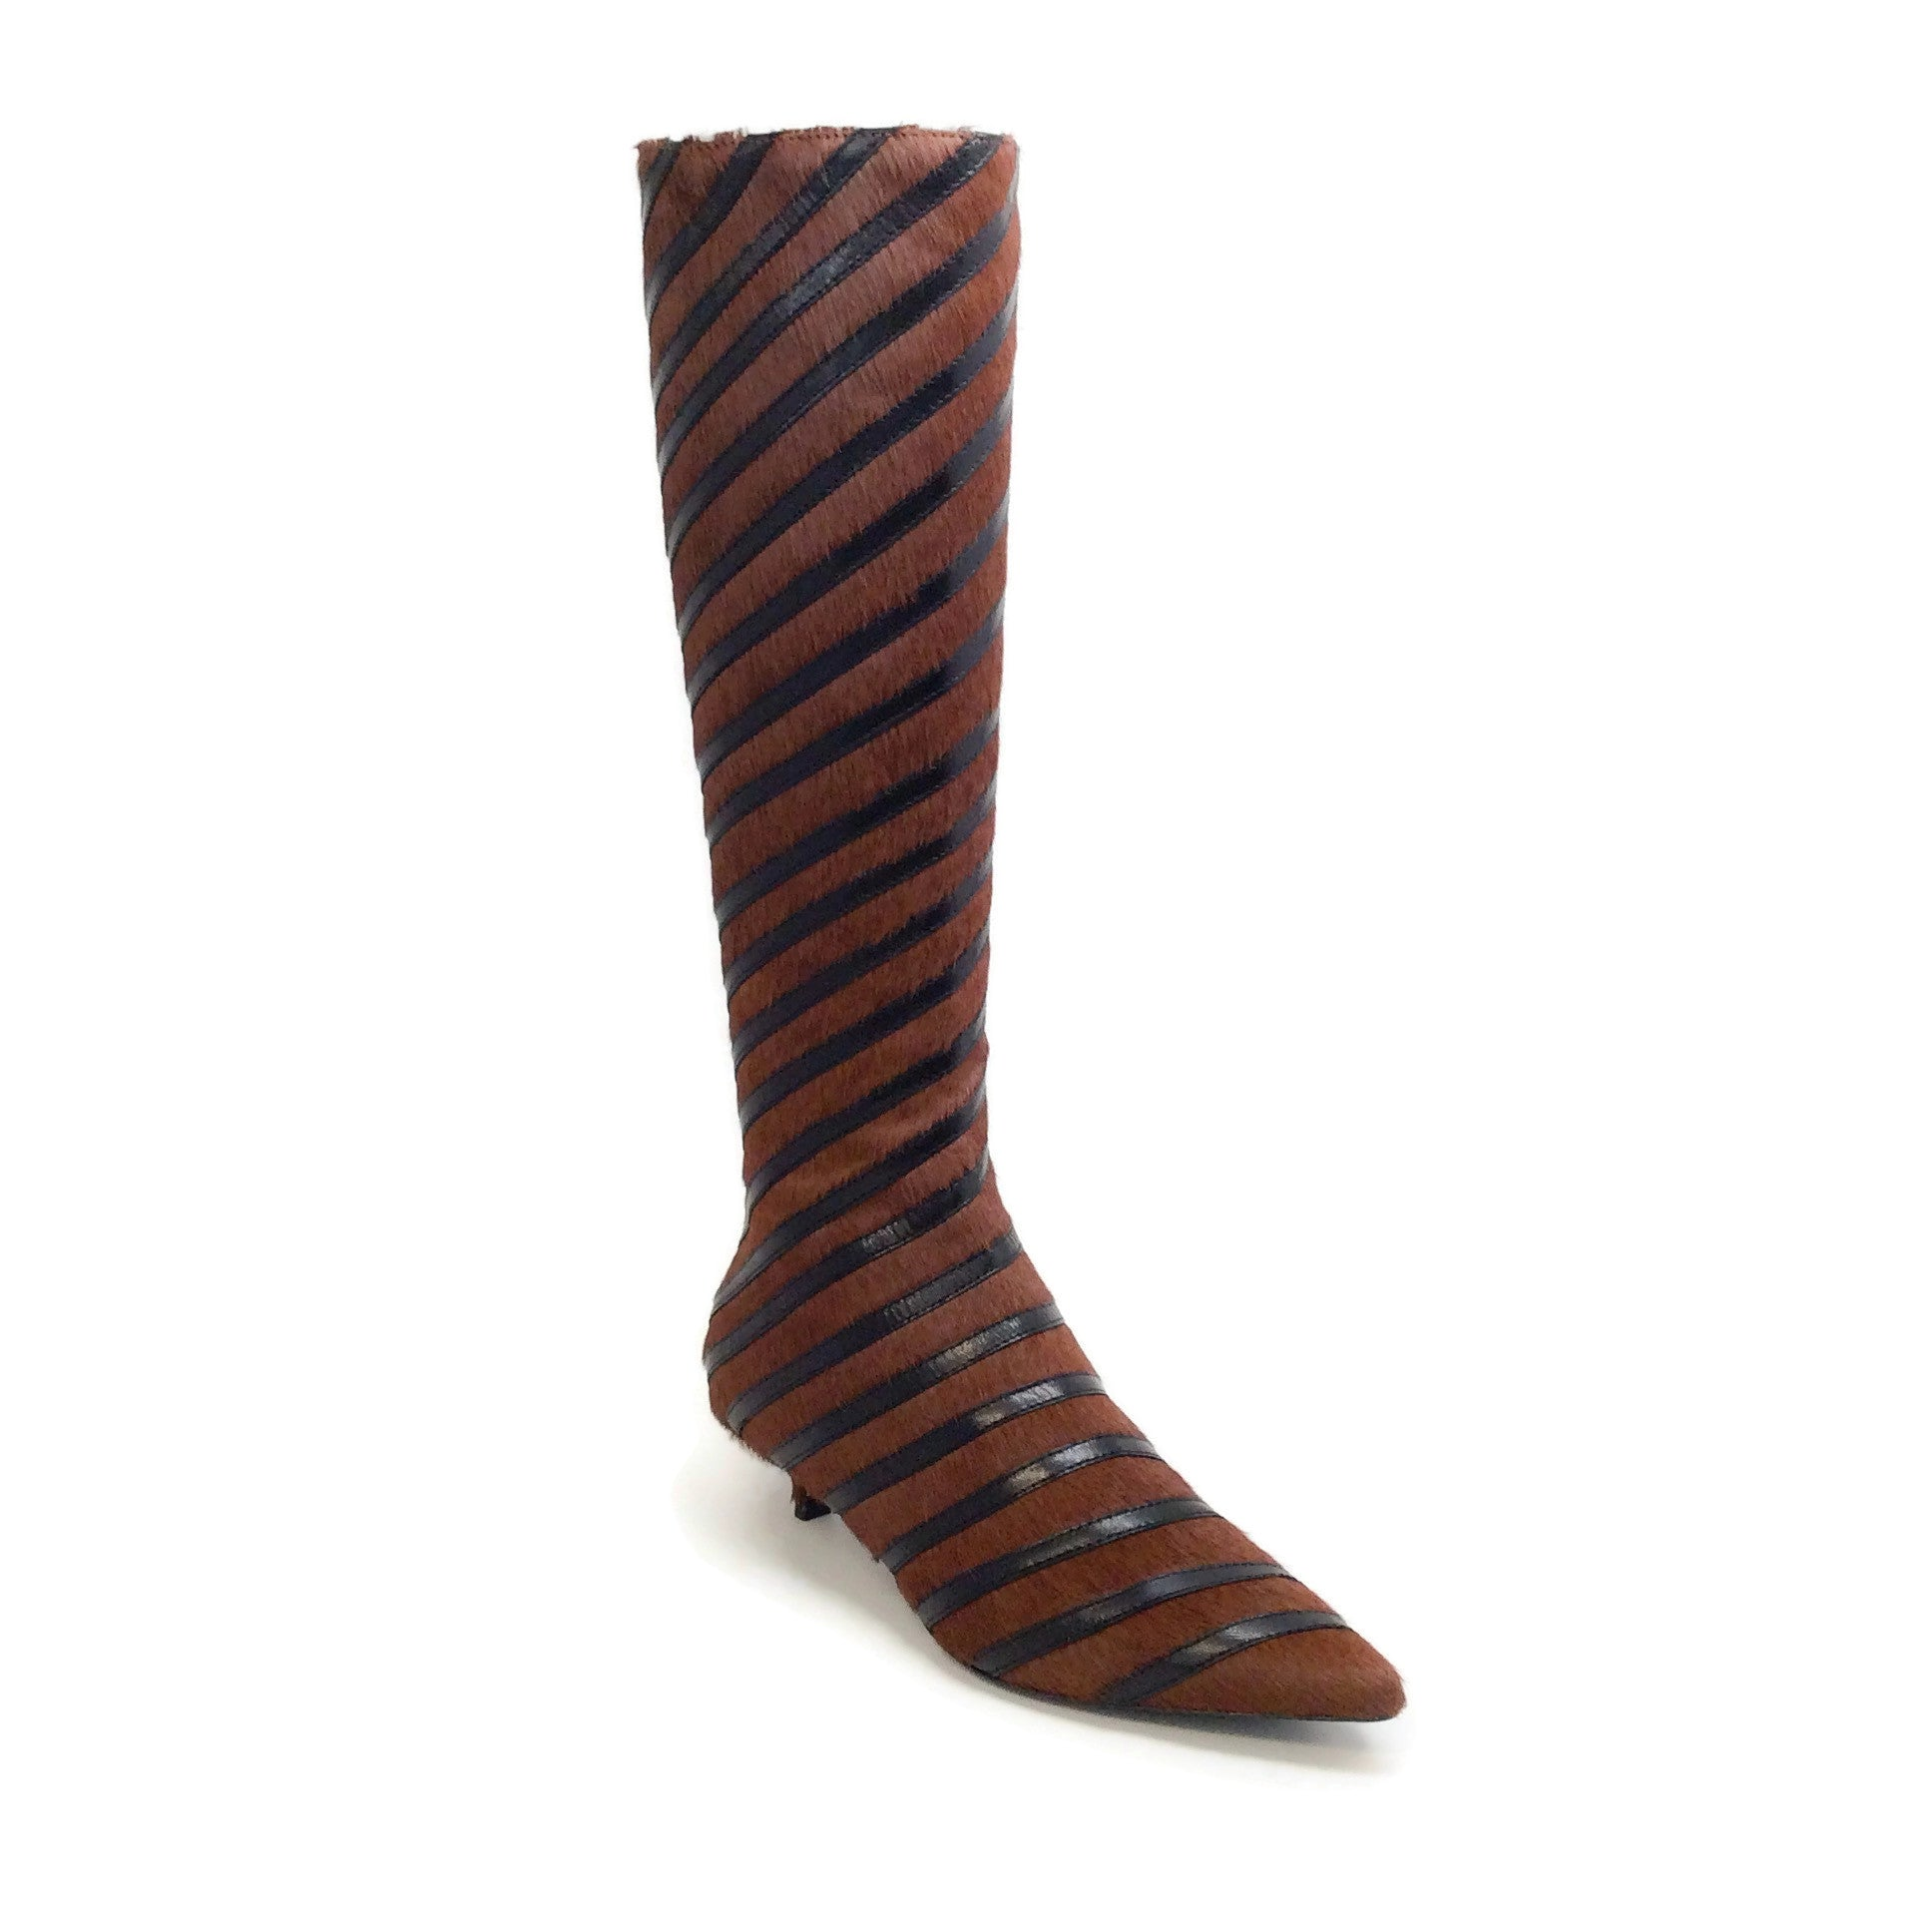 Sonia Rykiel Marron / Black Calf Stripe Detail Kitten Heel Tall Boots